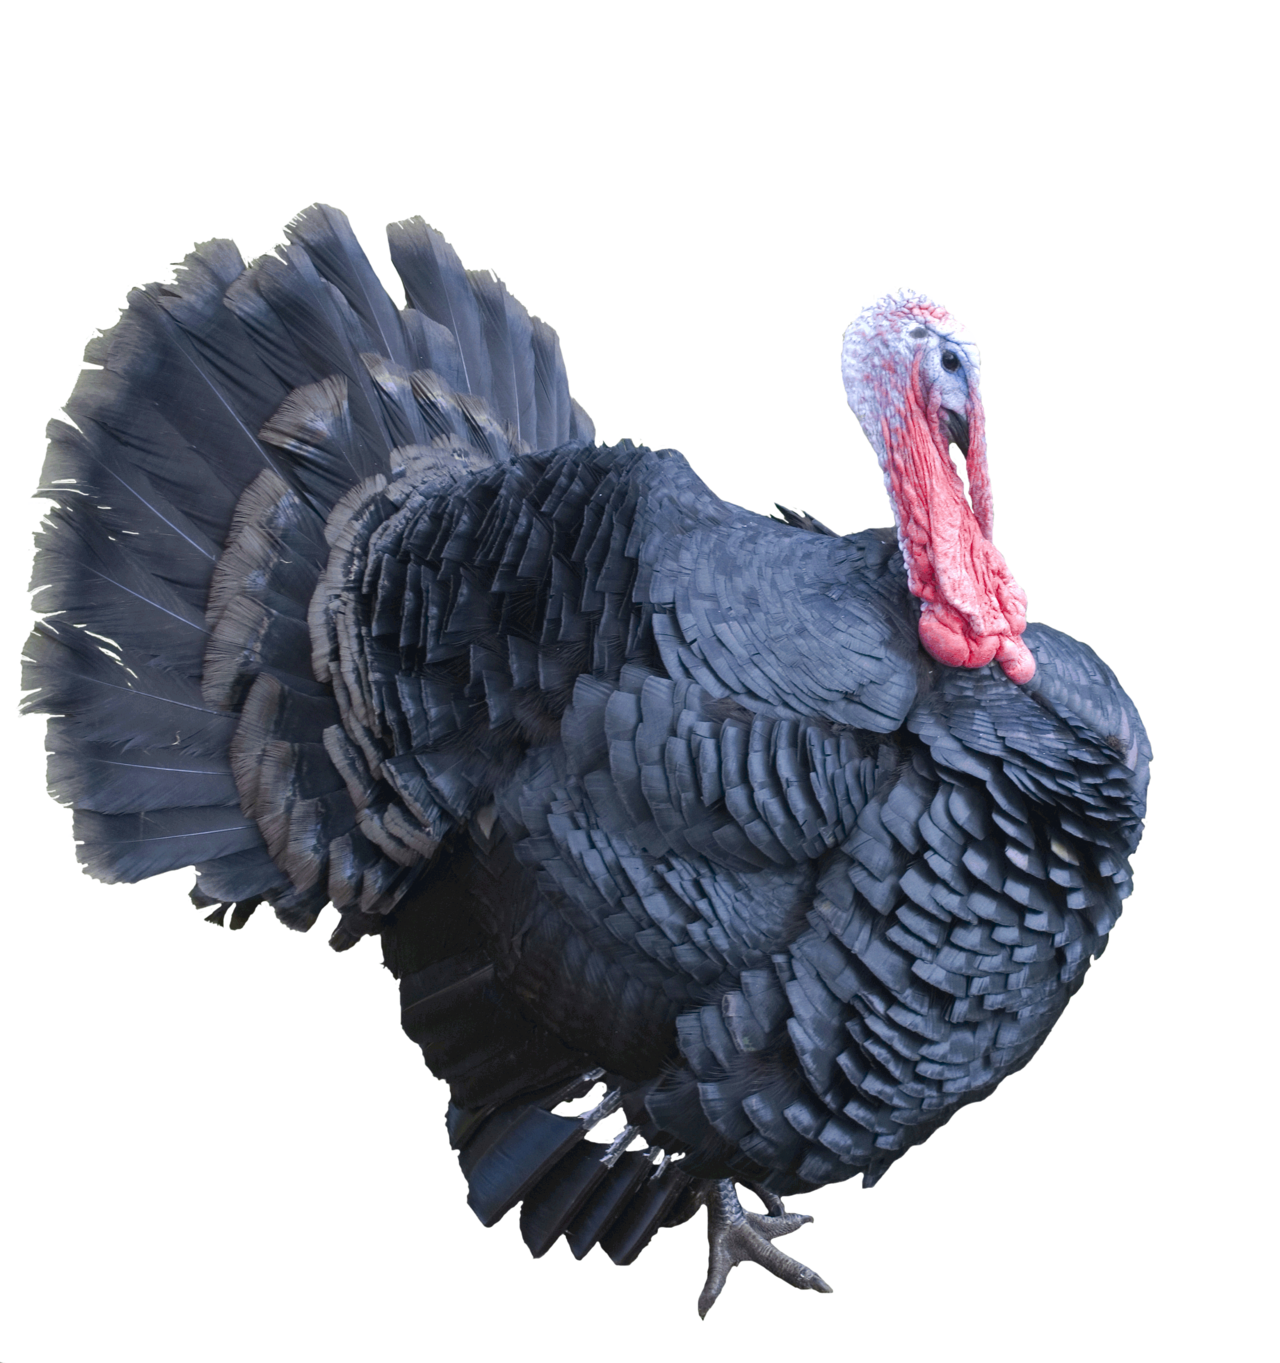 Best Free Turkey Png Image #20356.